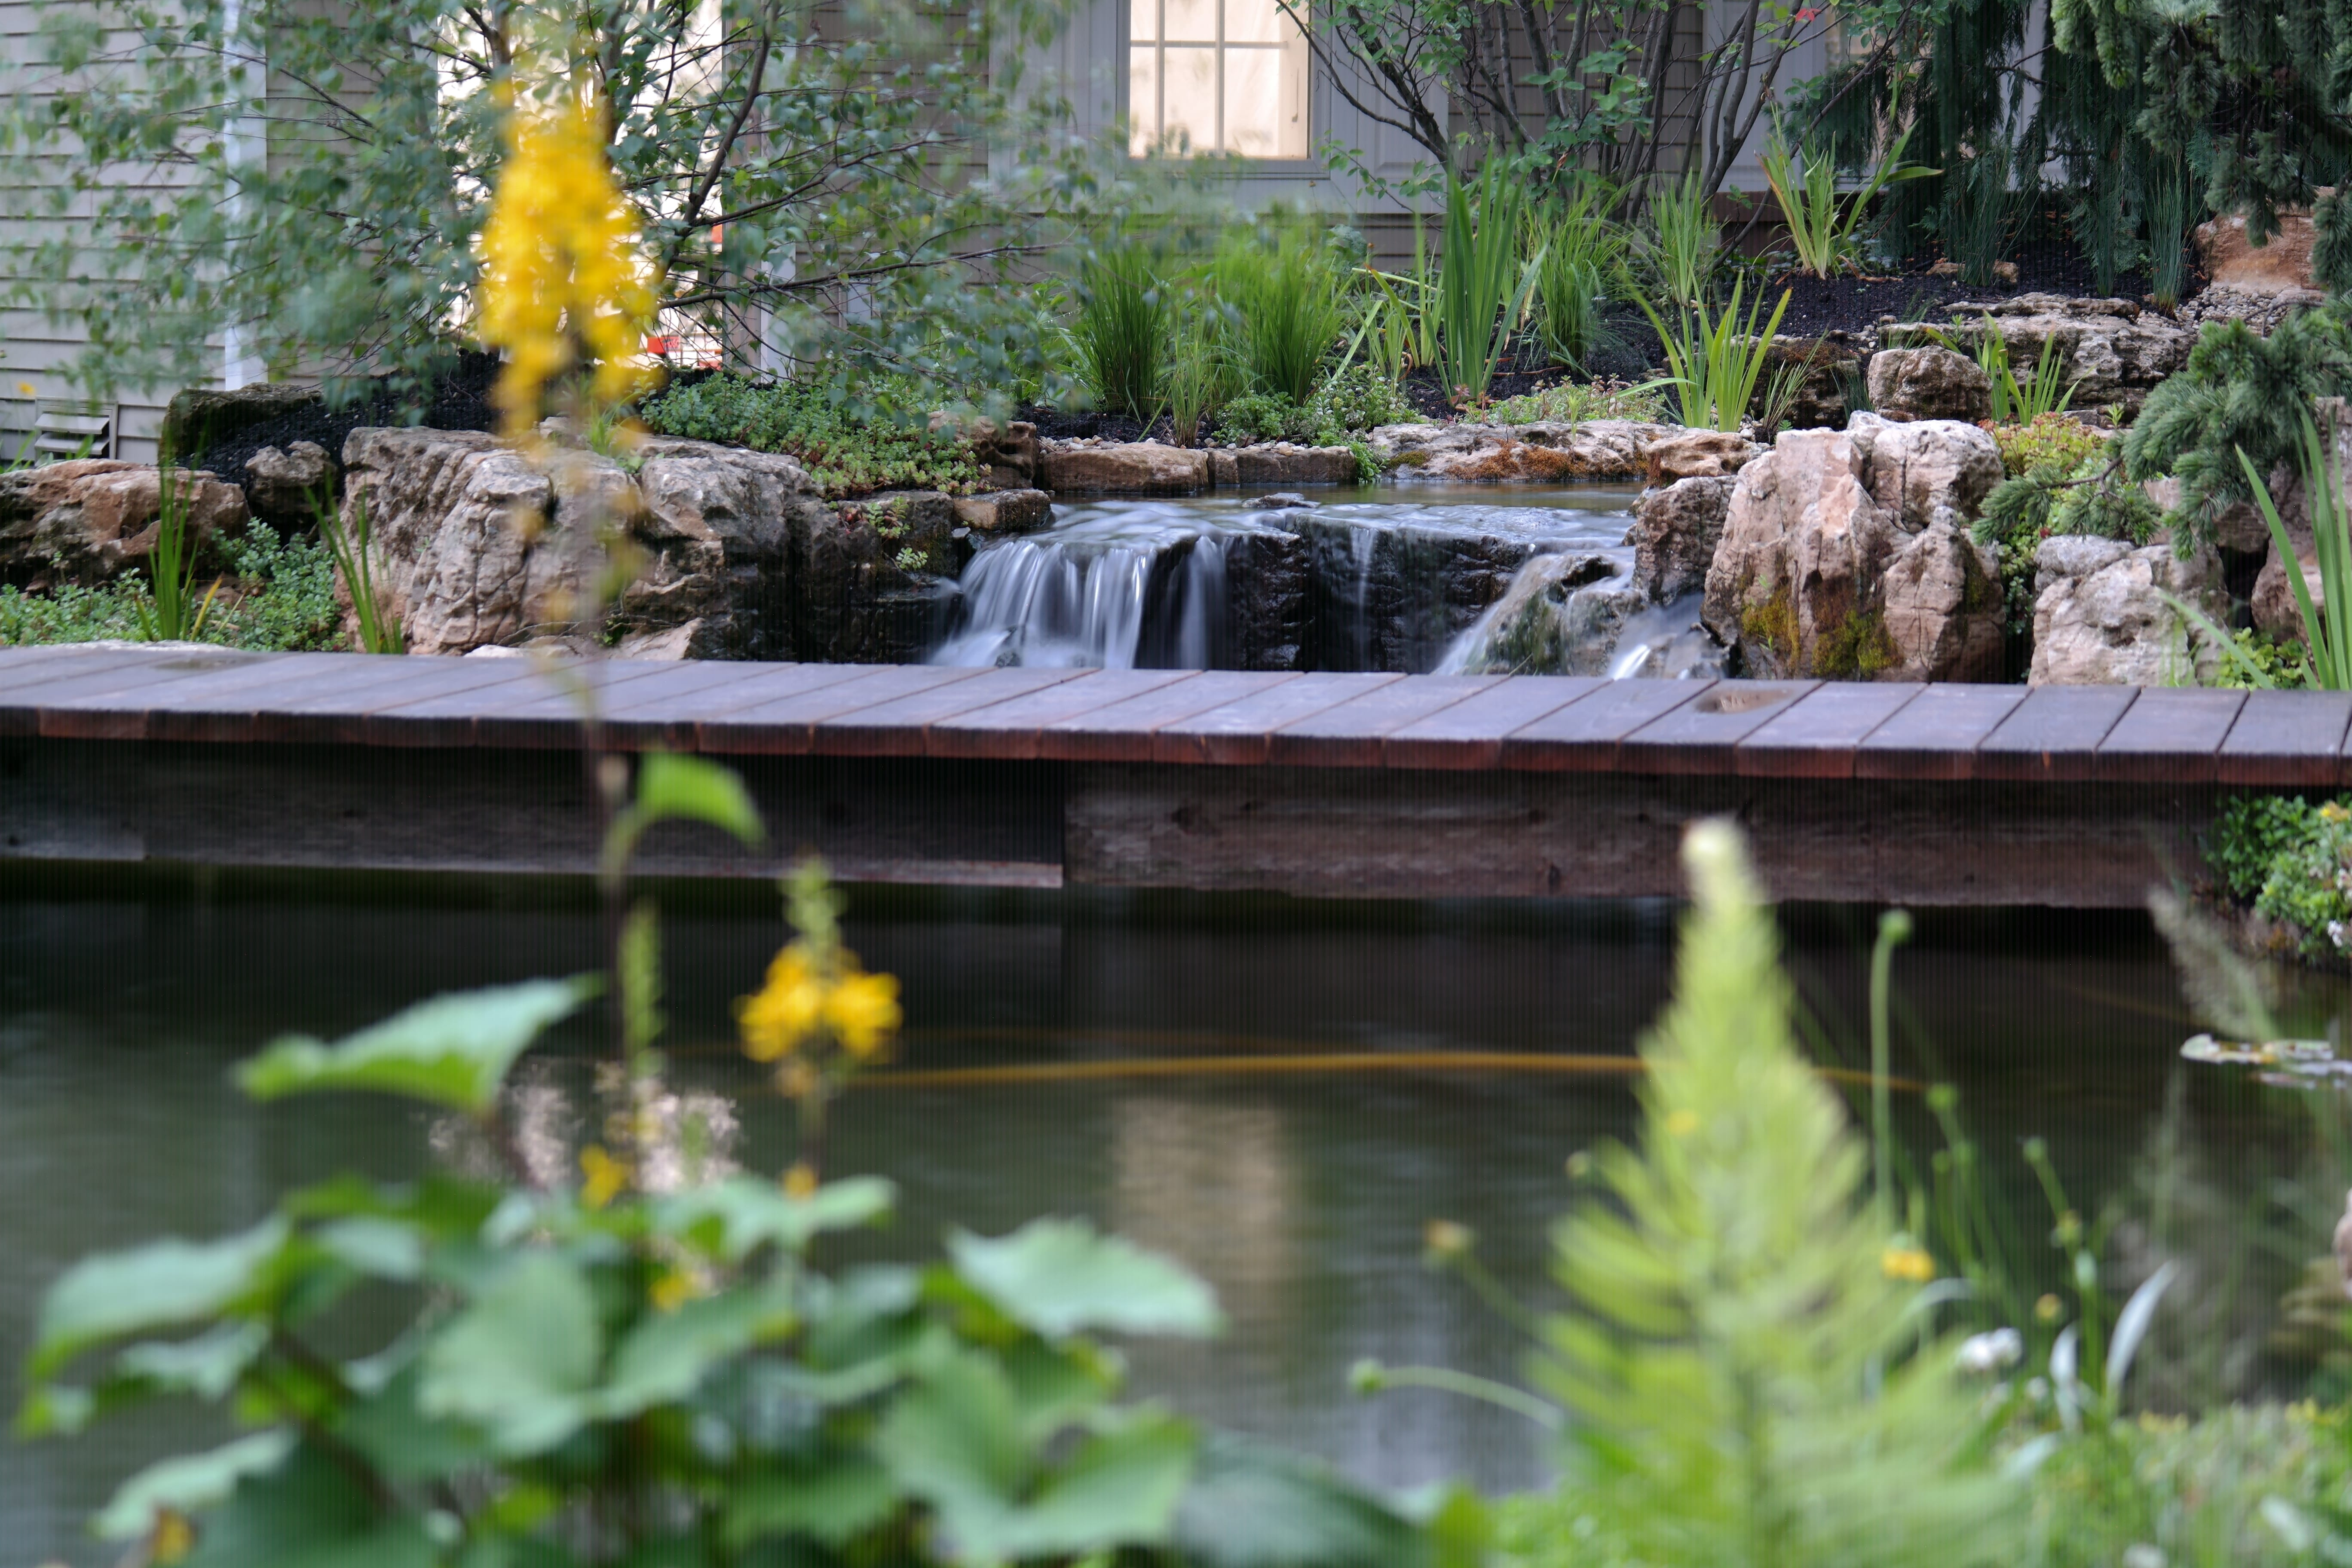 Dream Backyard With Incredible Koi Pond Reflections Water Gardens